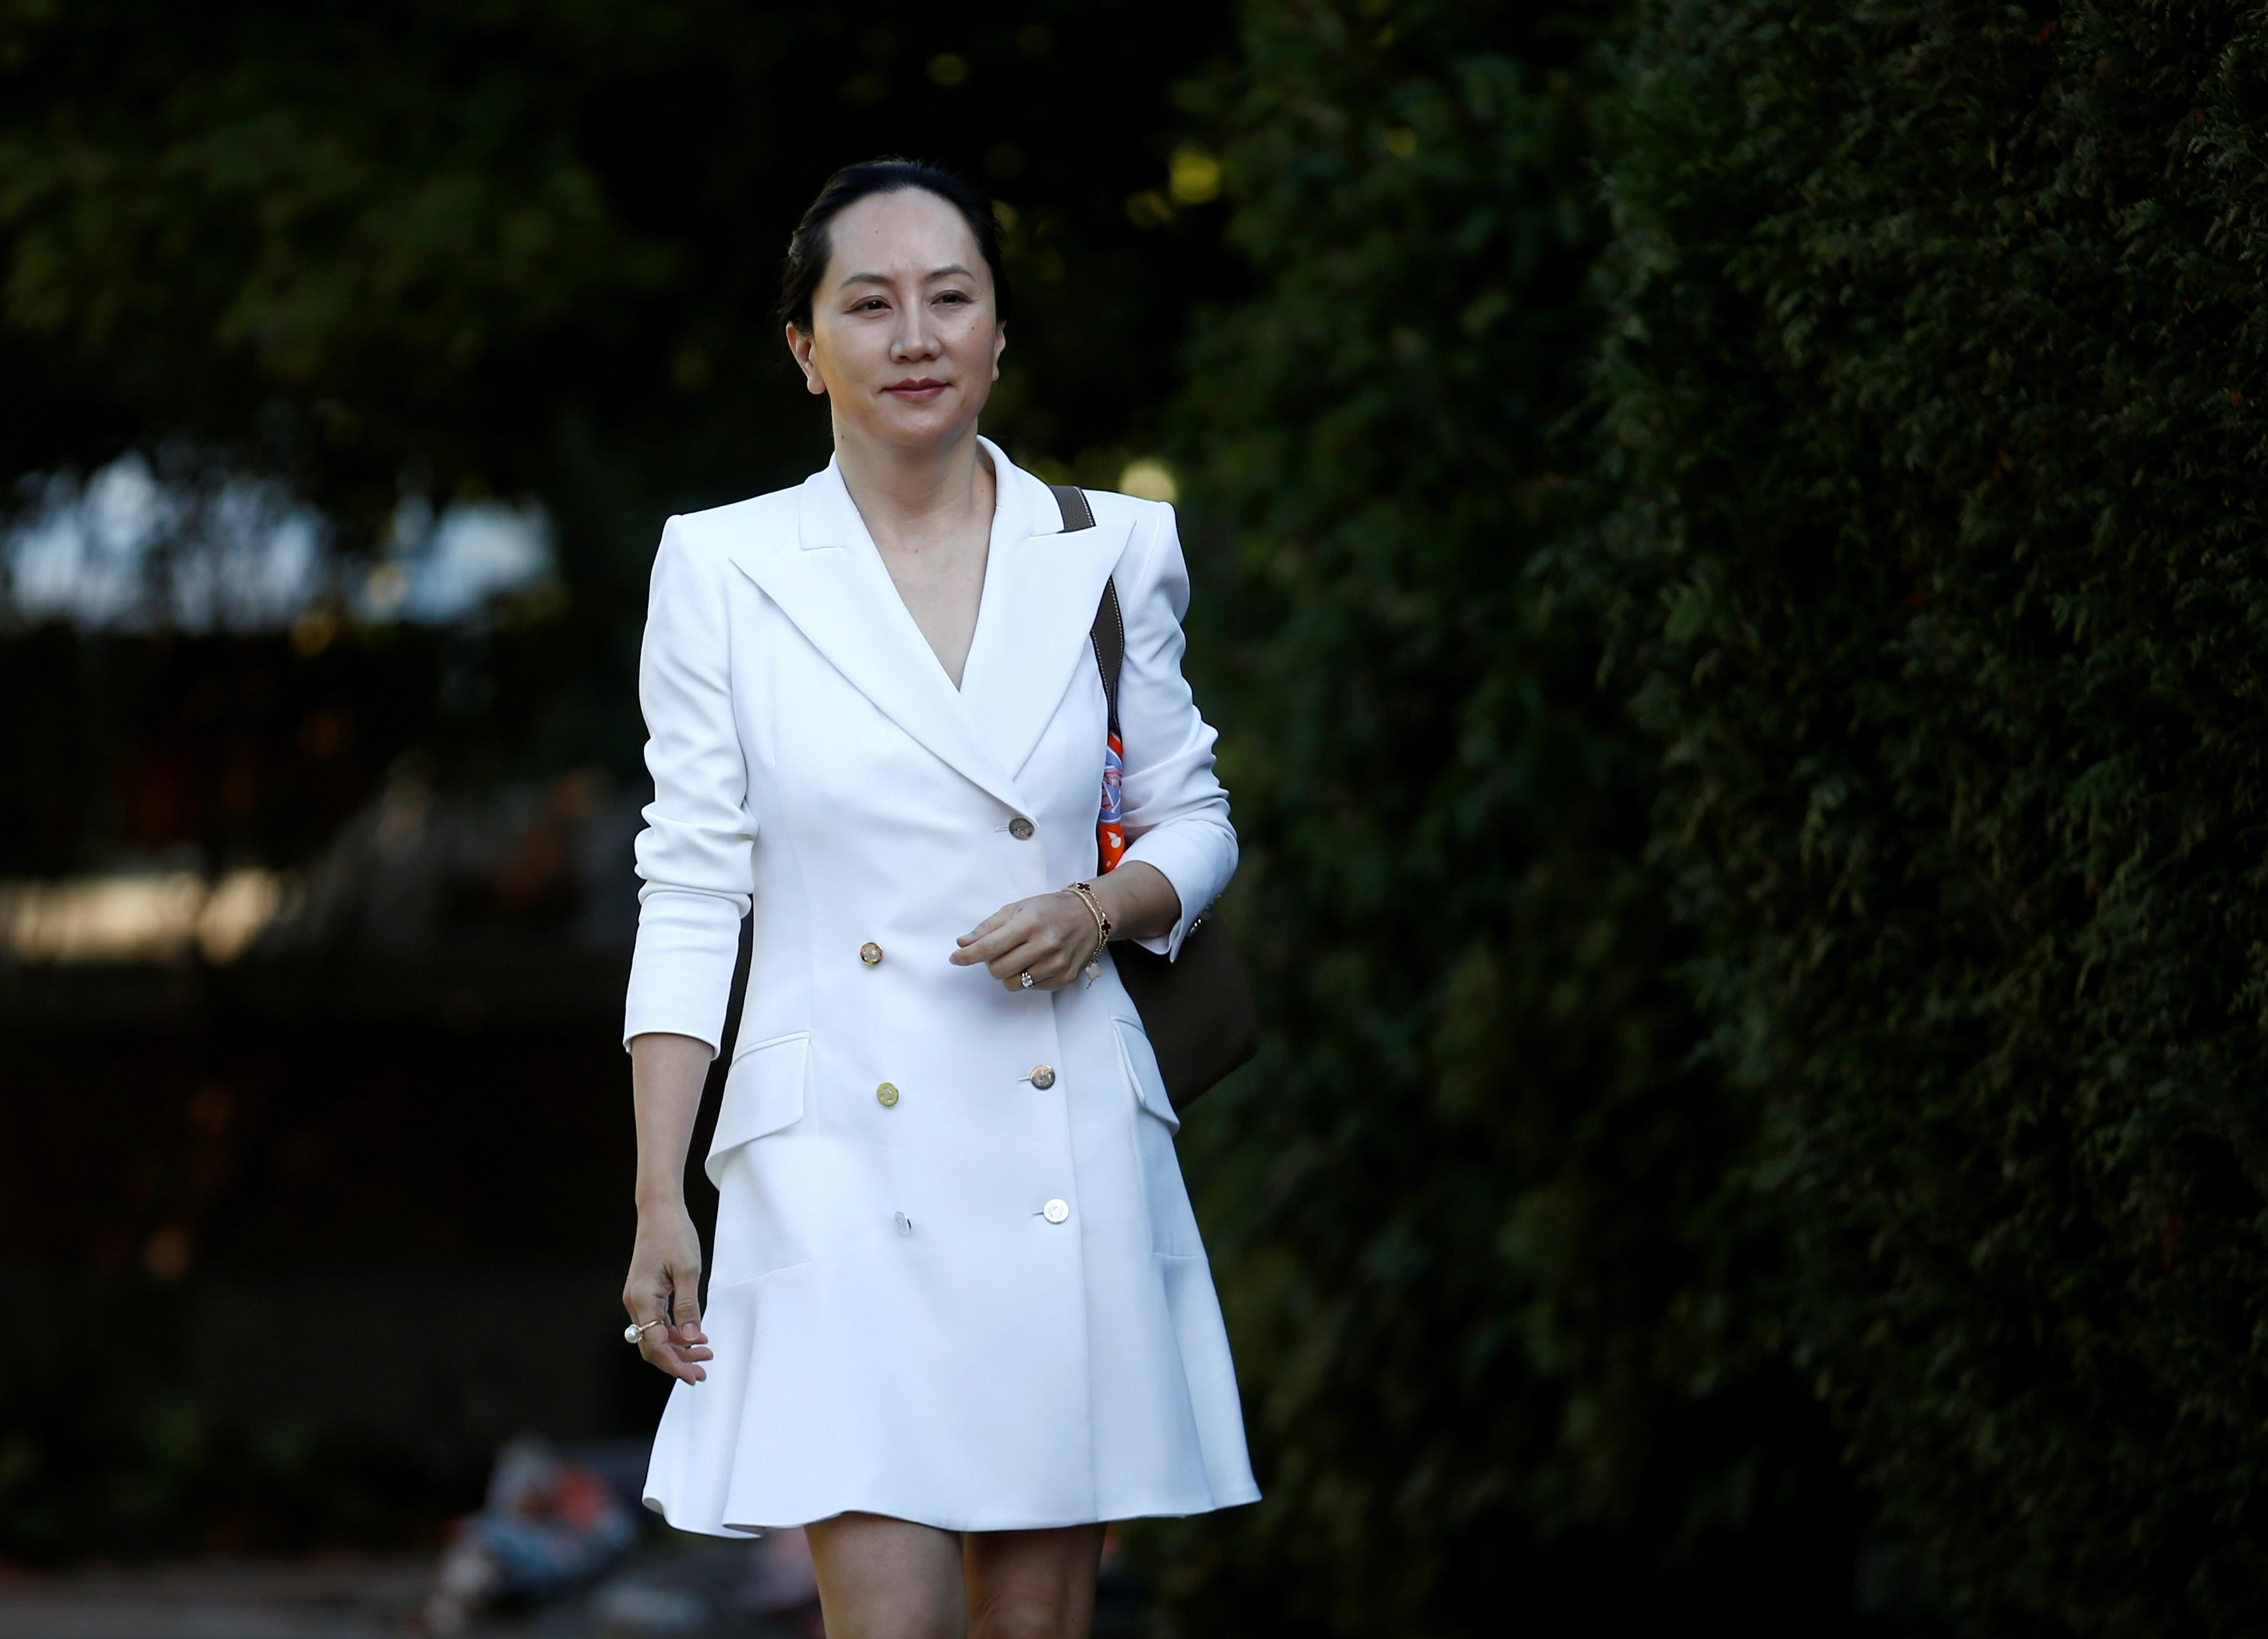 Huawei files application in Canada to stay extradition of CFO